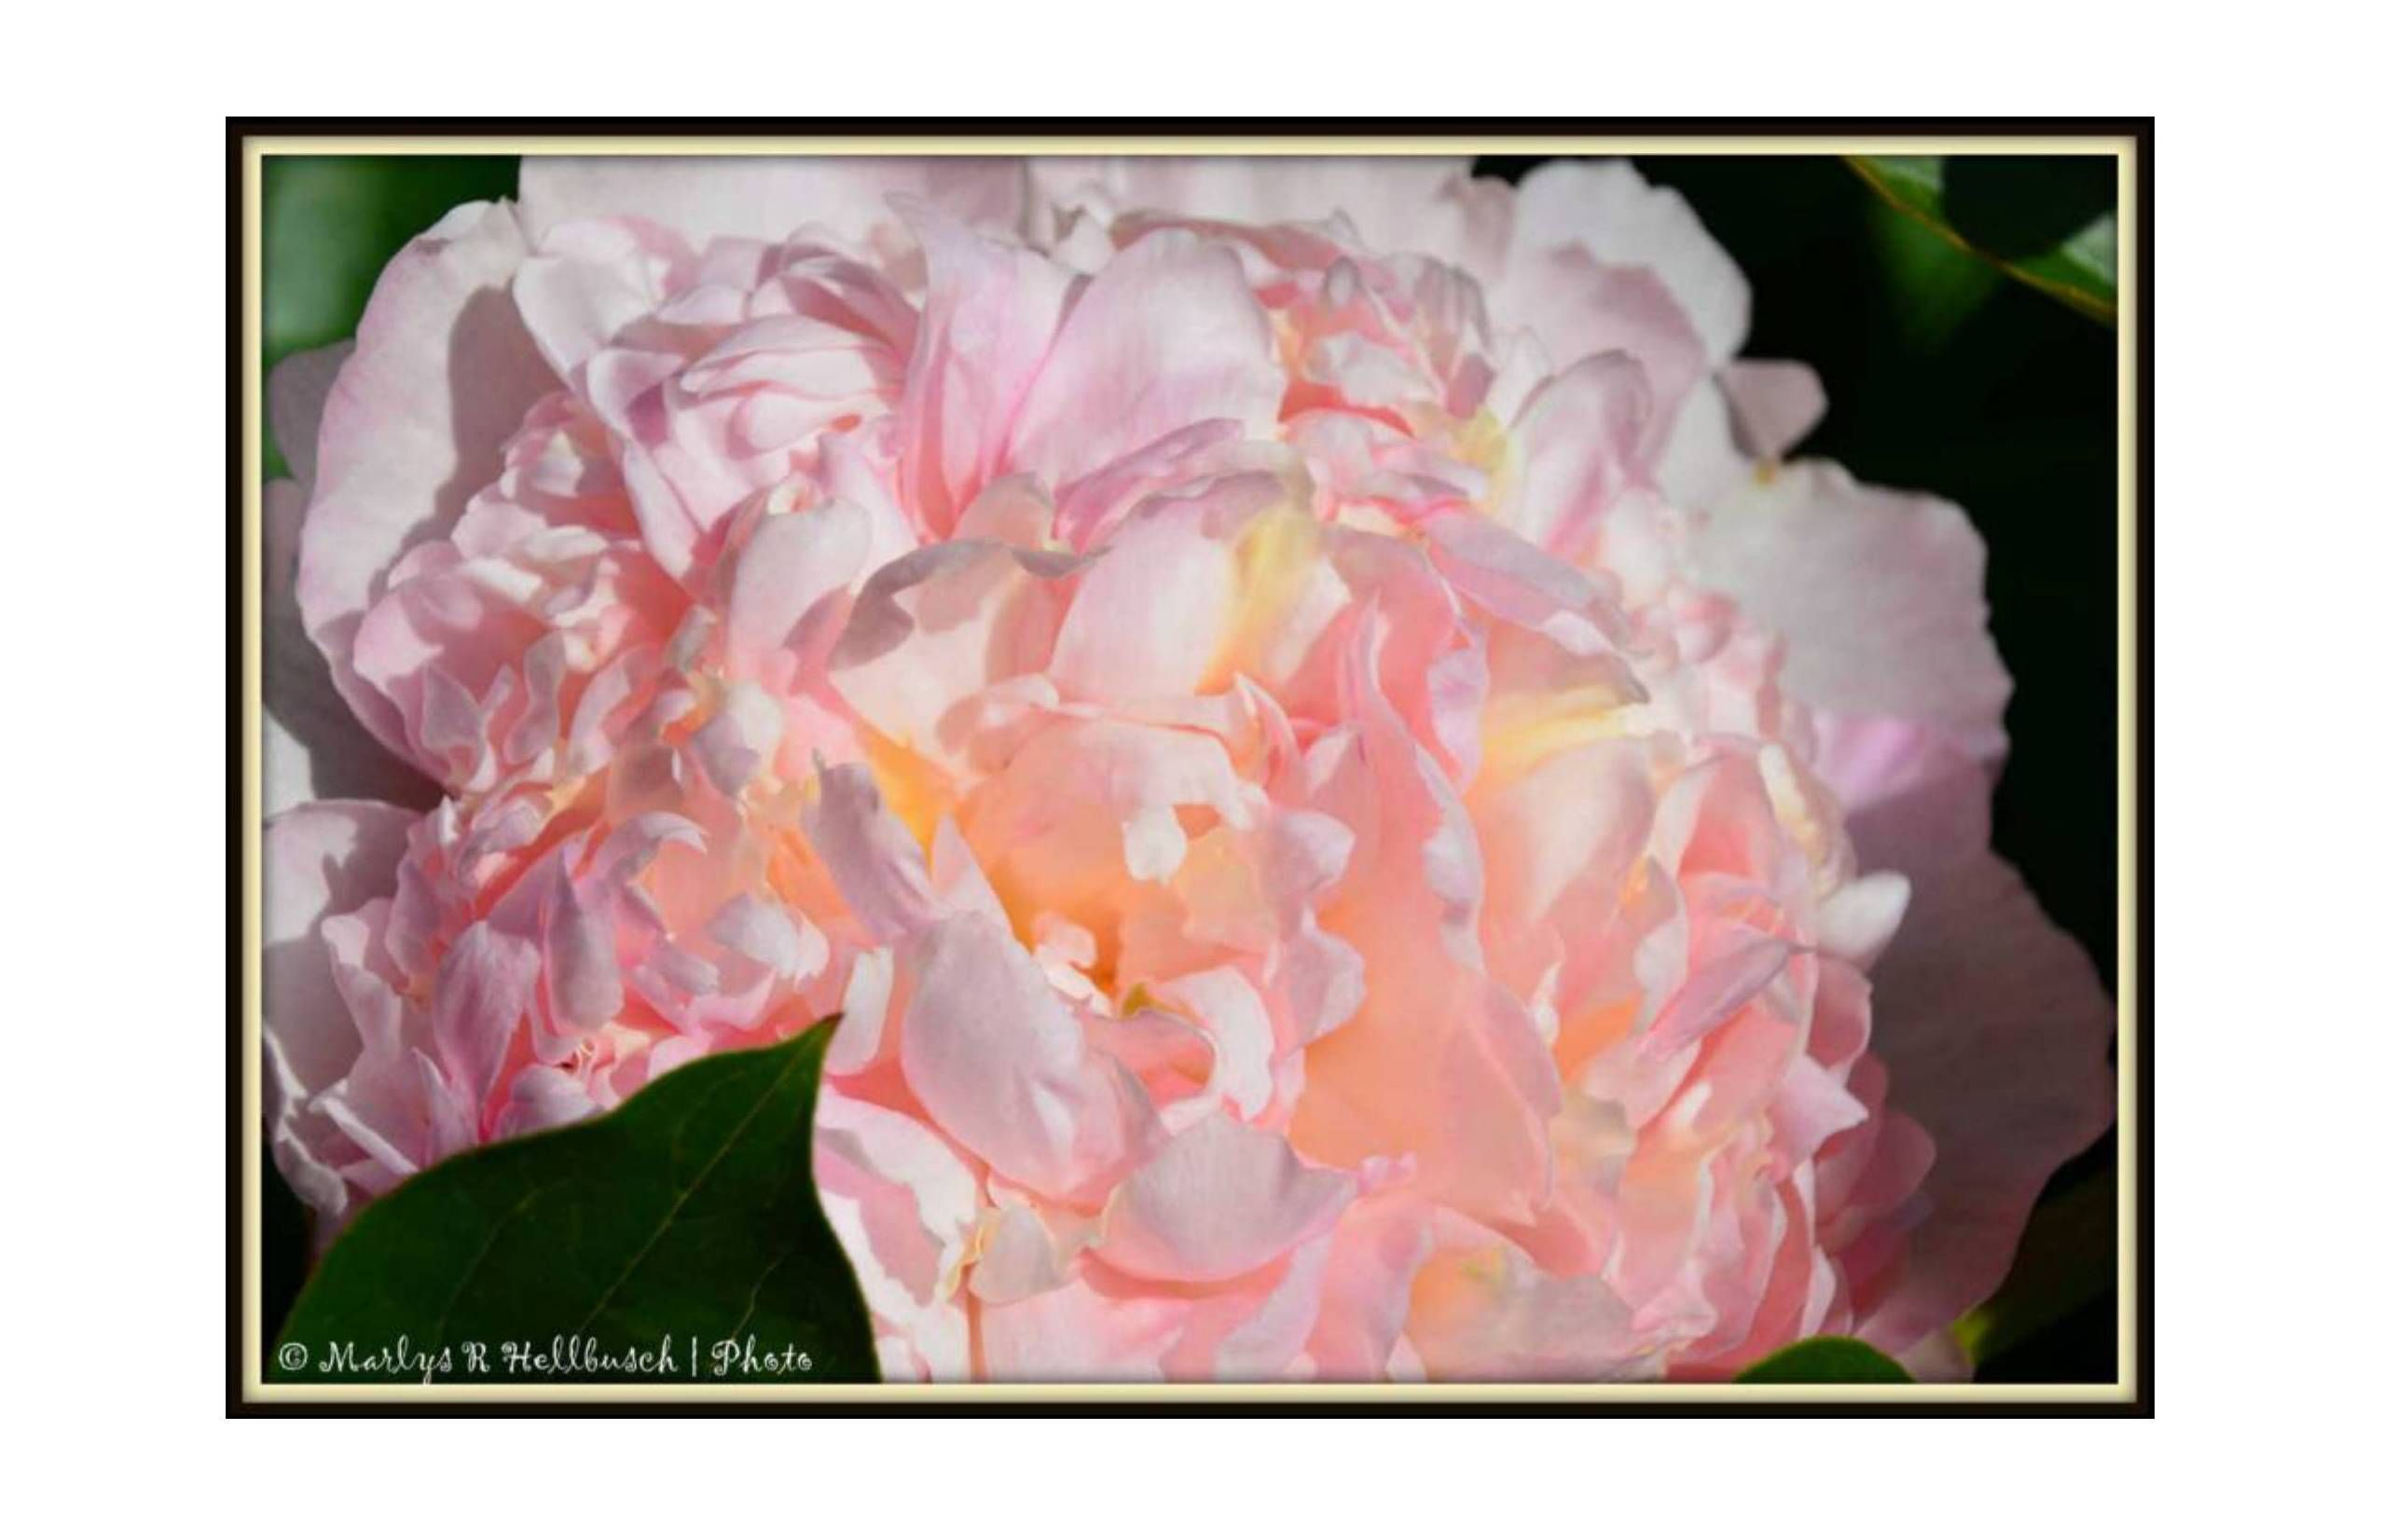 Peony ' Raspberry Sherbet':  Design your own personal card on line using your photos or use a pre-made template! It will be printed, stamped and mailed for you! Easy as 1,2,3! Retail or Wholesale www.PixByMarlys.com